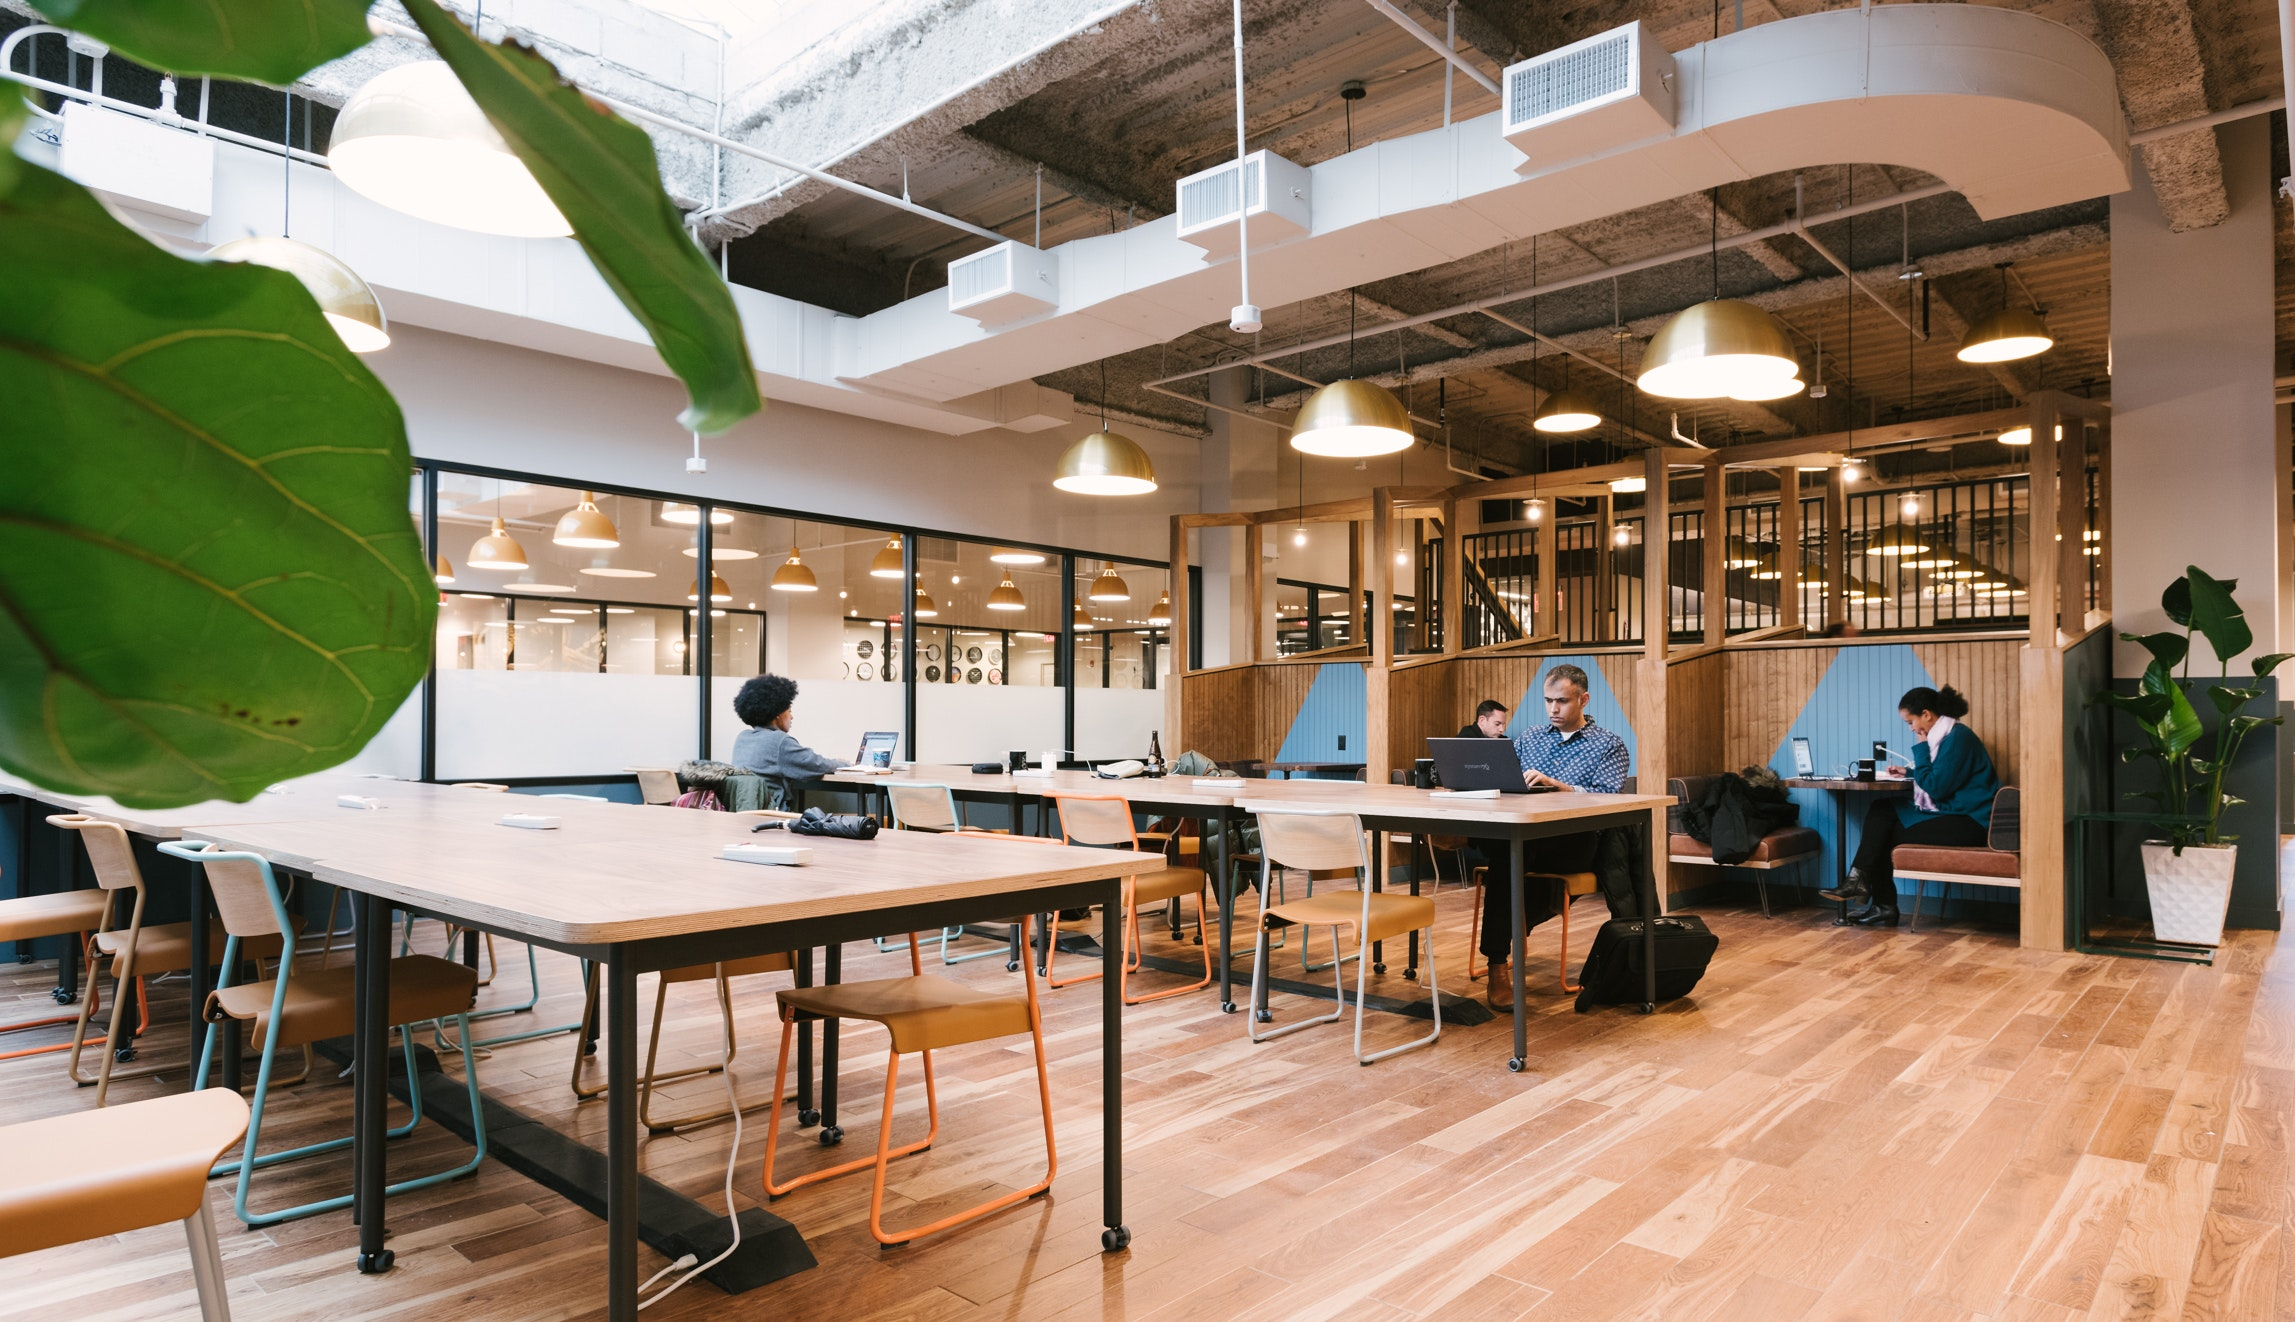 Harlem Coworking Office Space   8 West 126th St   WeWork